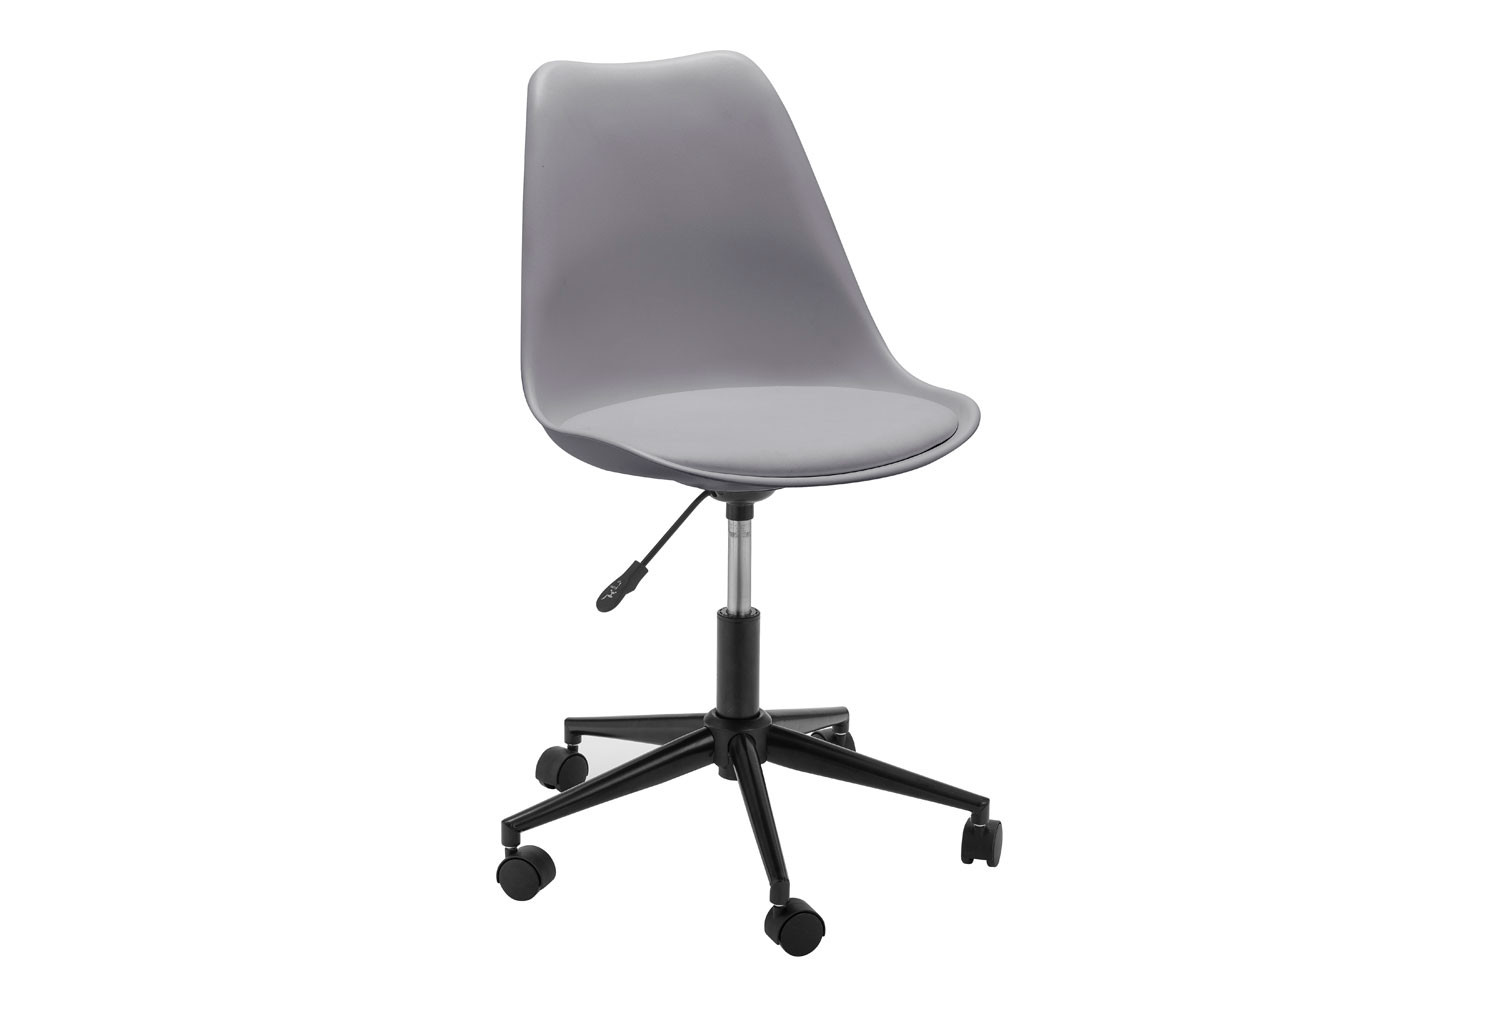 Denning Grey Office Chair with Black Base